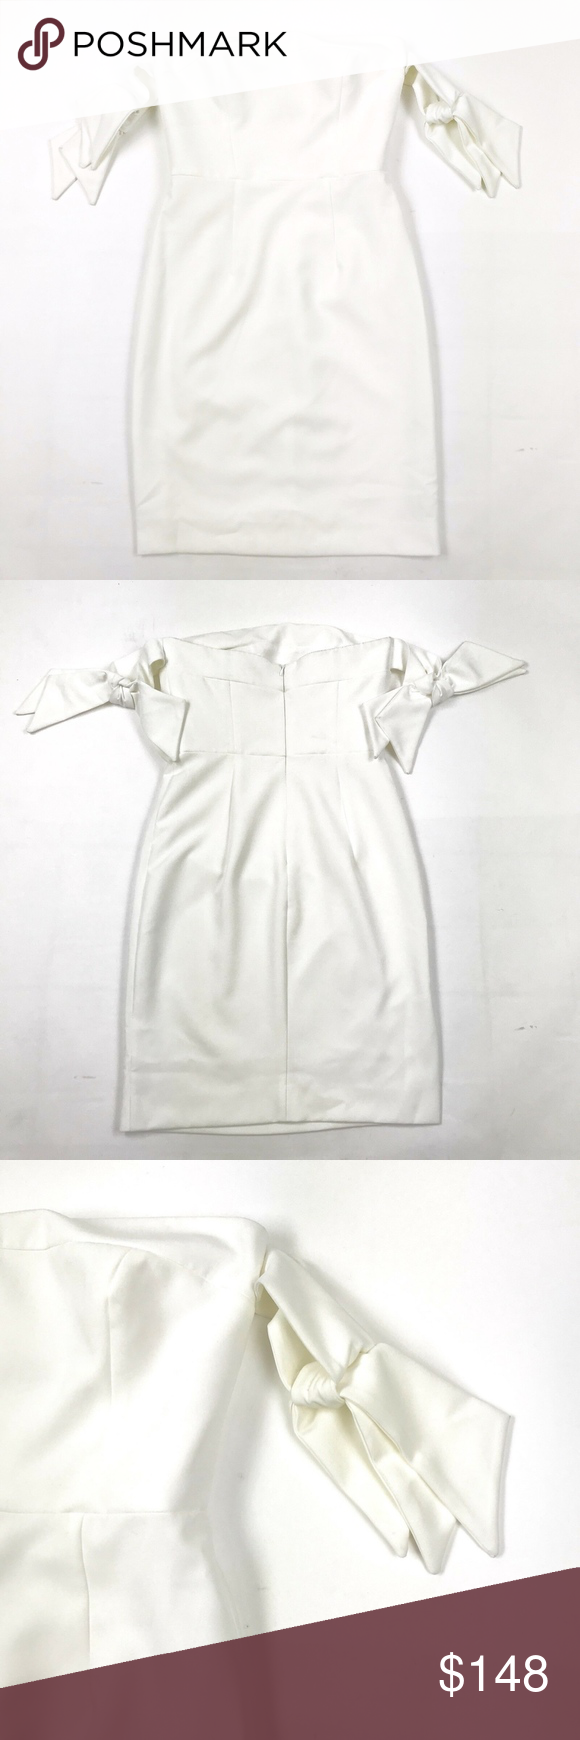 1d1a1748f7048 Milly Jade Off-the-Shoulder Swing Dress Sz 0 Milly Jade Off-the-Shoulder  Tie Sleeve Italian Cady Swing Dress Solid White Sz 0 Overall good, ...